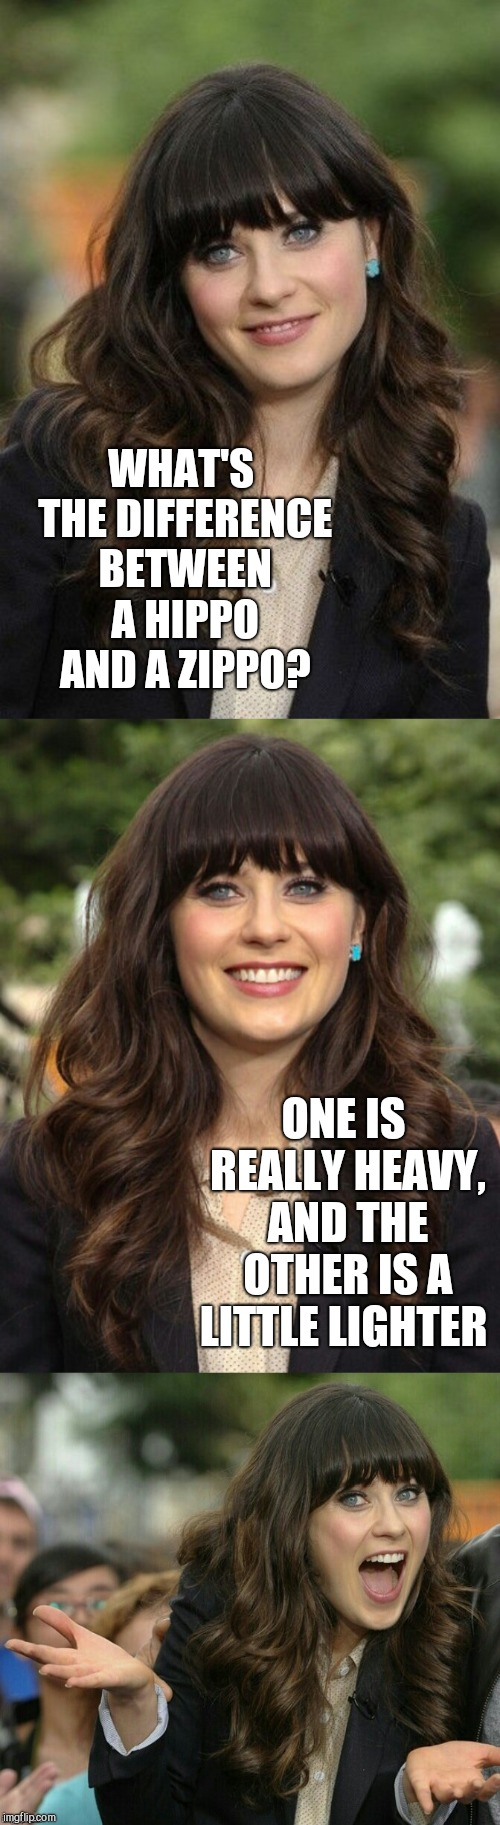 Zooey Deschanel joke template  | WHAT'S THE DIFFERENCE BETWEEN A HIPPO AND A ZIPPO? ONE IS REALLY HEAVY, AND THE OTHER IS A LITTLE LIGHTER | image tagged in zooey deschanel joke template,zooey deschanel,jbmemegeek,bad puns | made w/ Imgflip meme maker